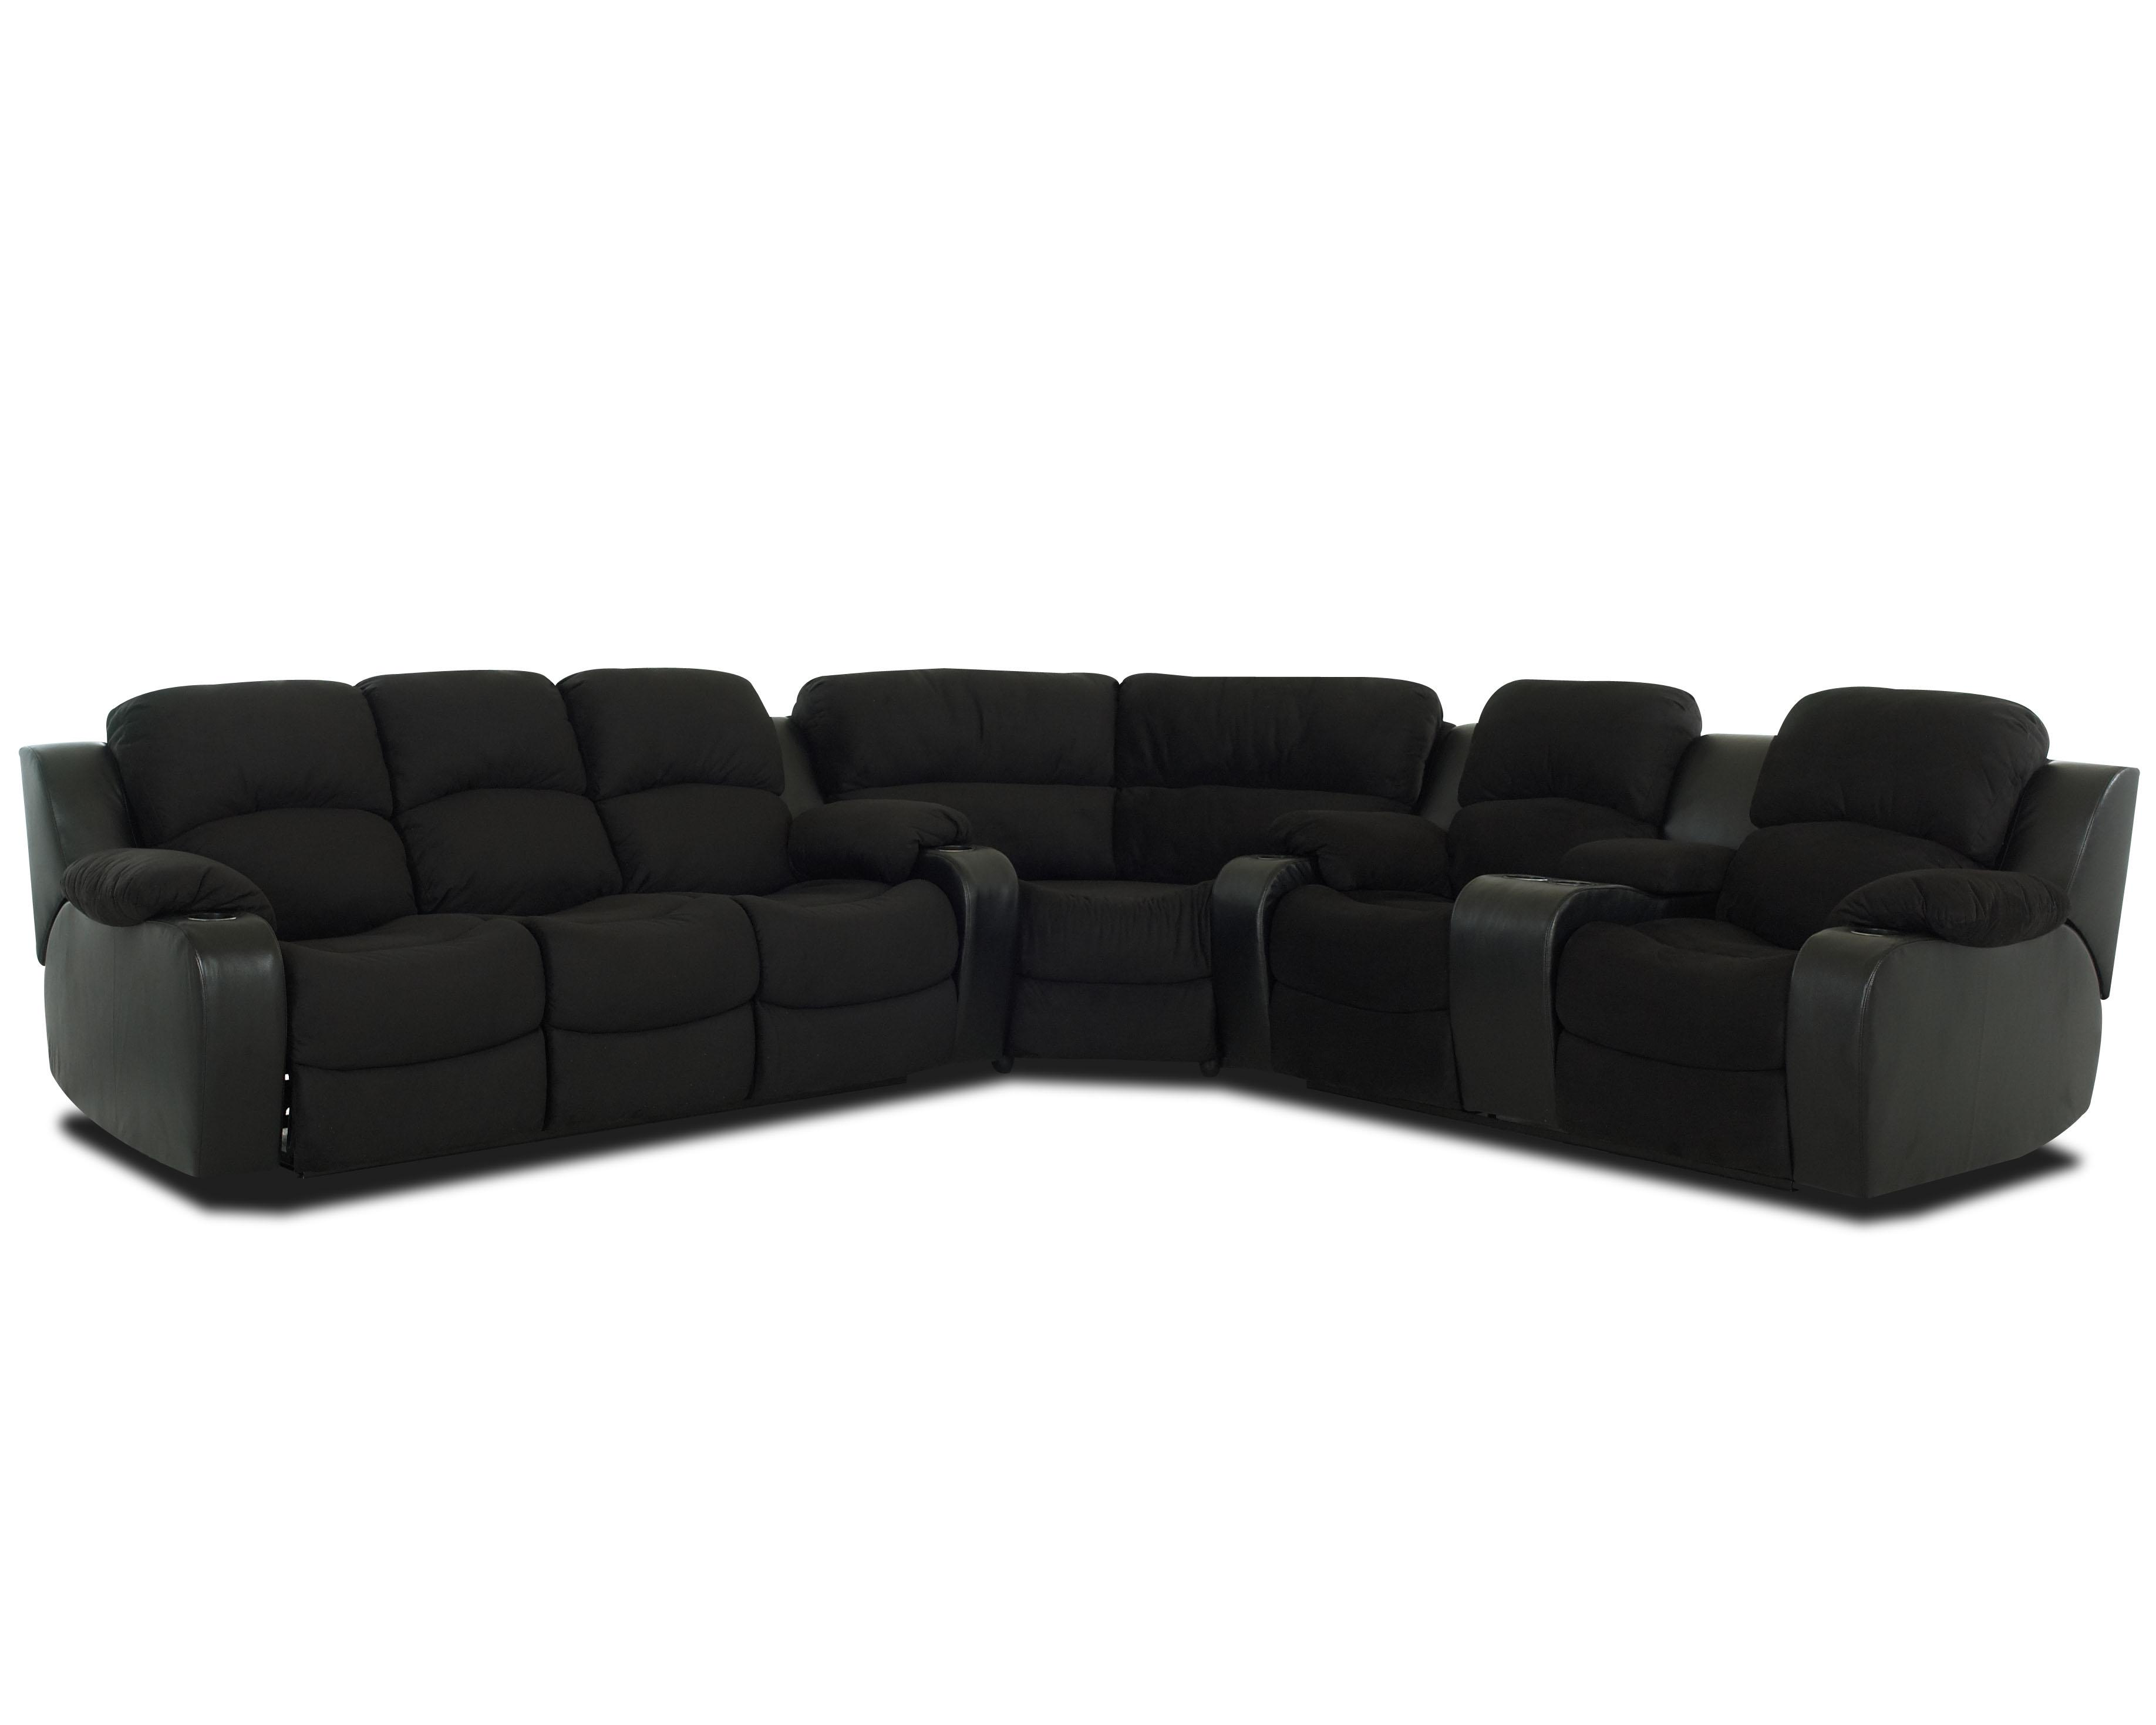 Klaussner Grand Reclining Sectional Sofa With Console   AHFA   Reclining Sectional  Sofa Dealer Locator